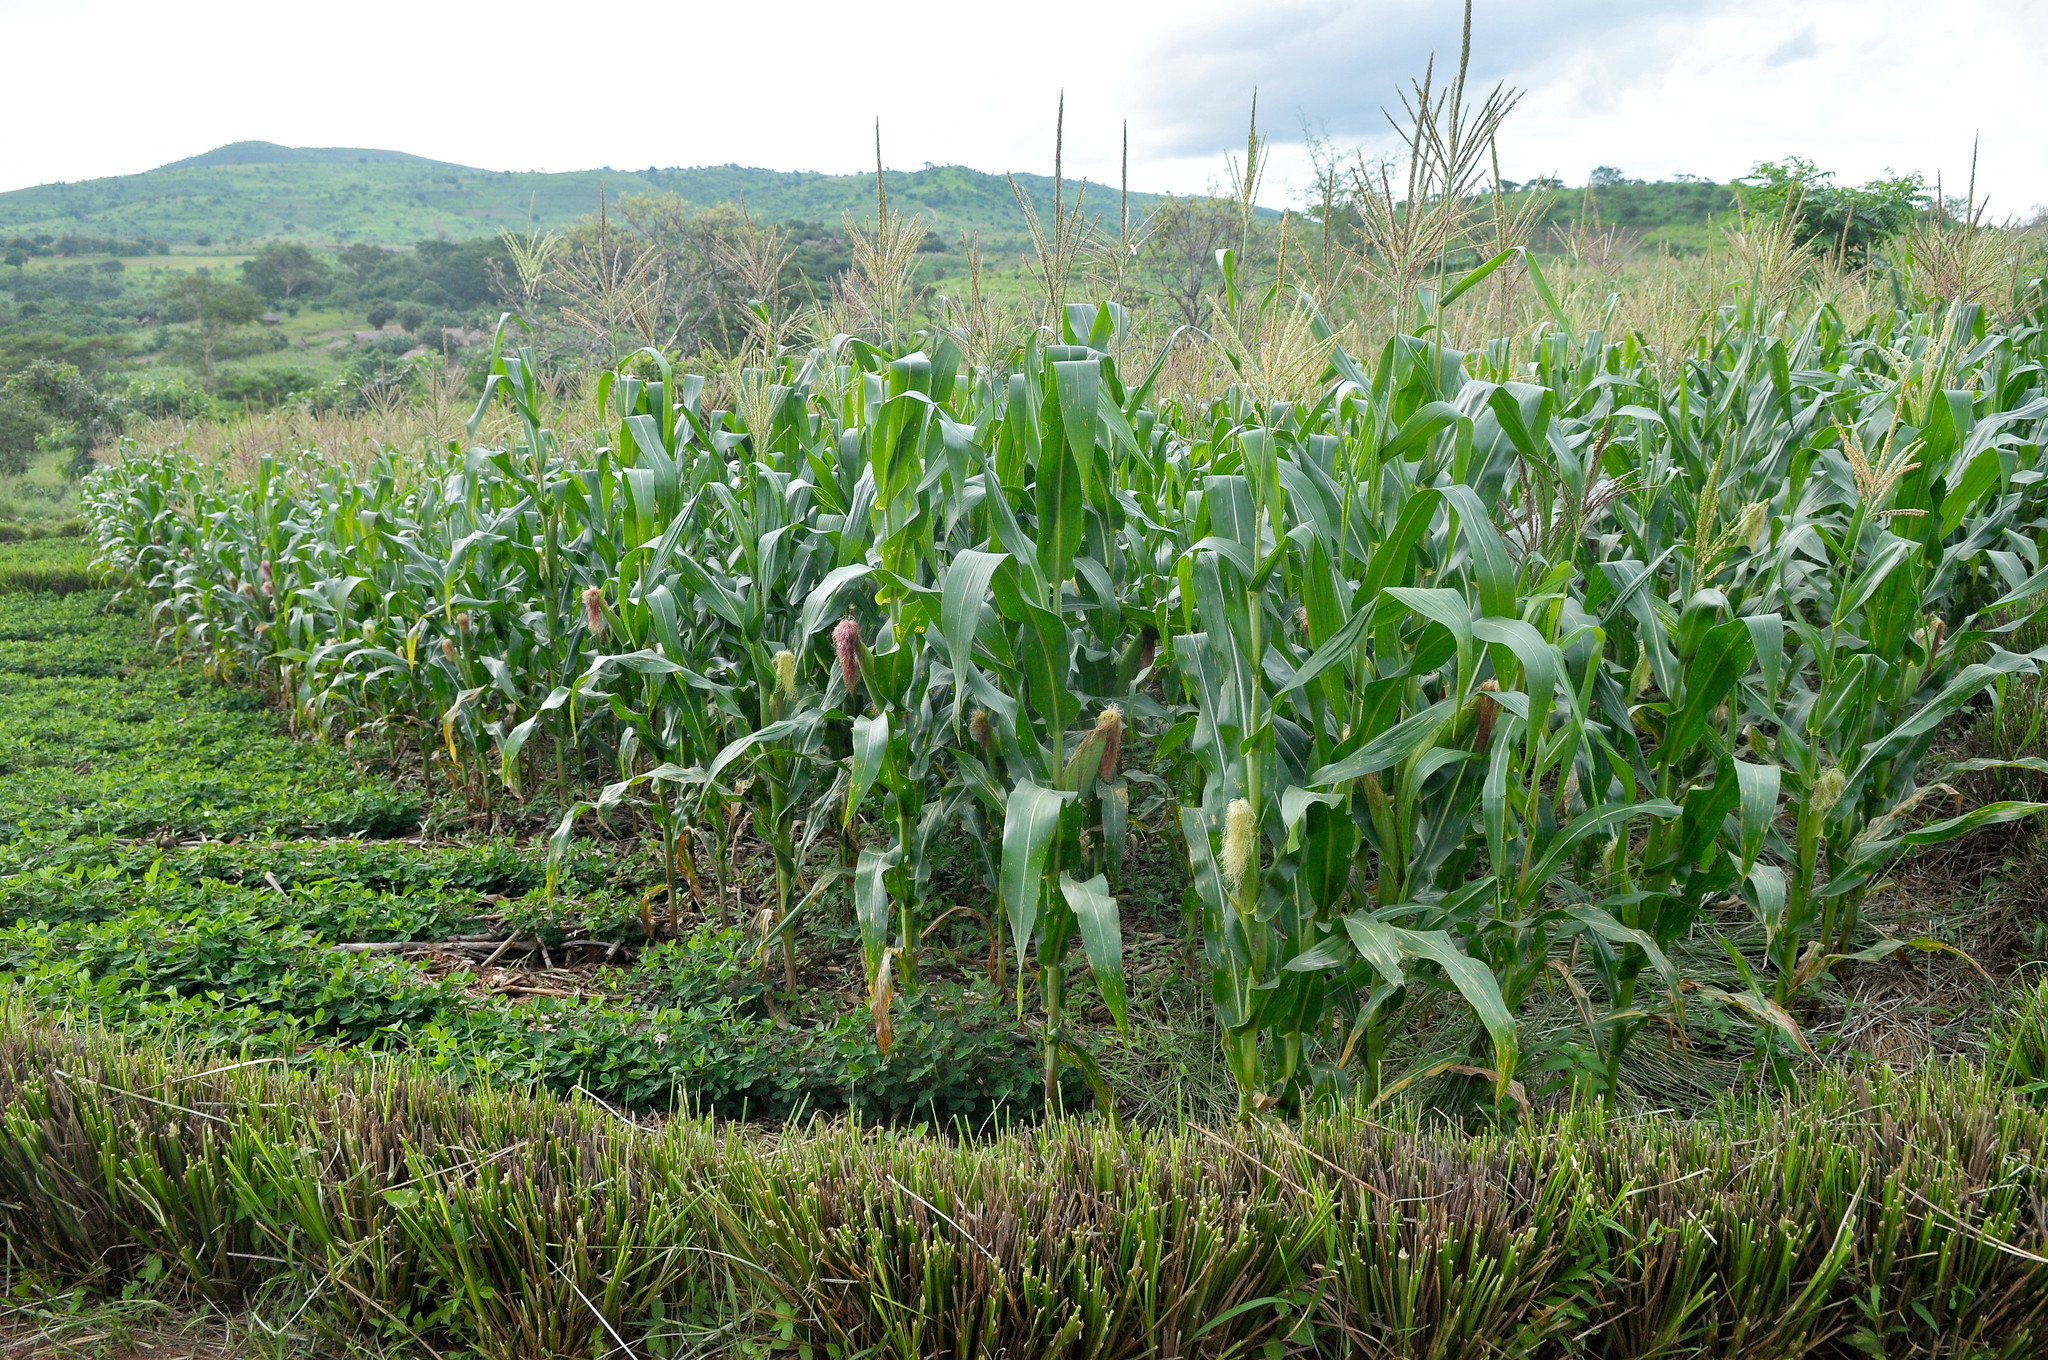 A farmer's field in Malawi under conservation agriculture, showing rotation of maize and groundnut, and the retention of crop residues. (Photo: T. Samson/CIMMYT)